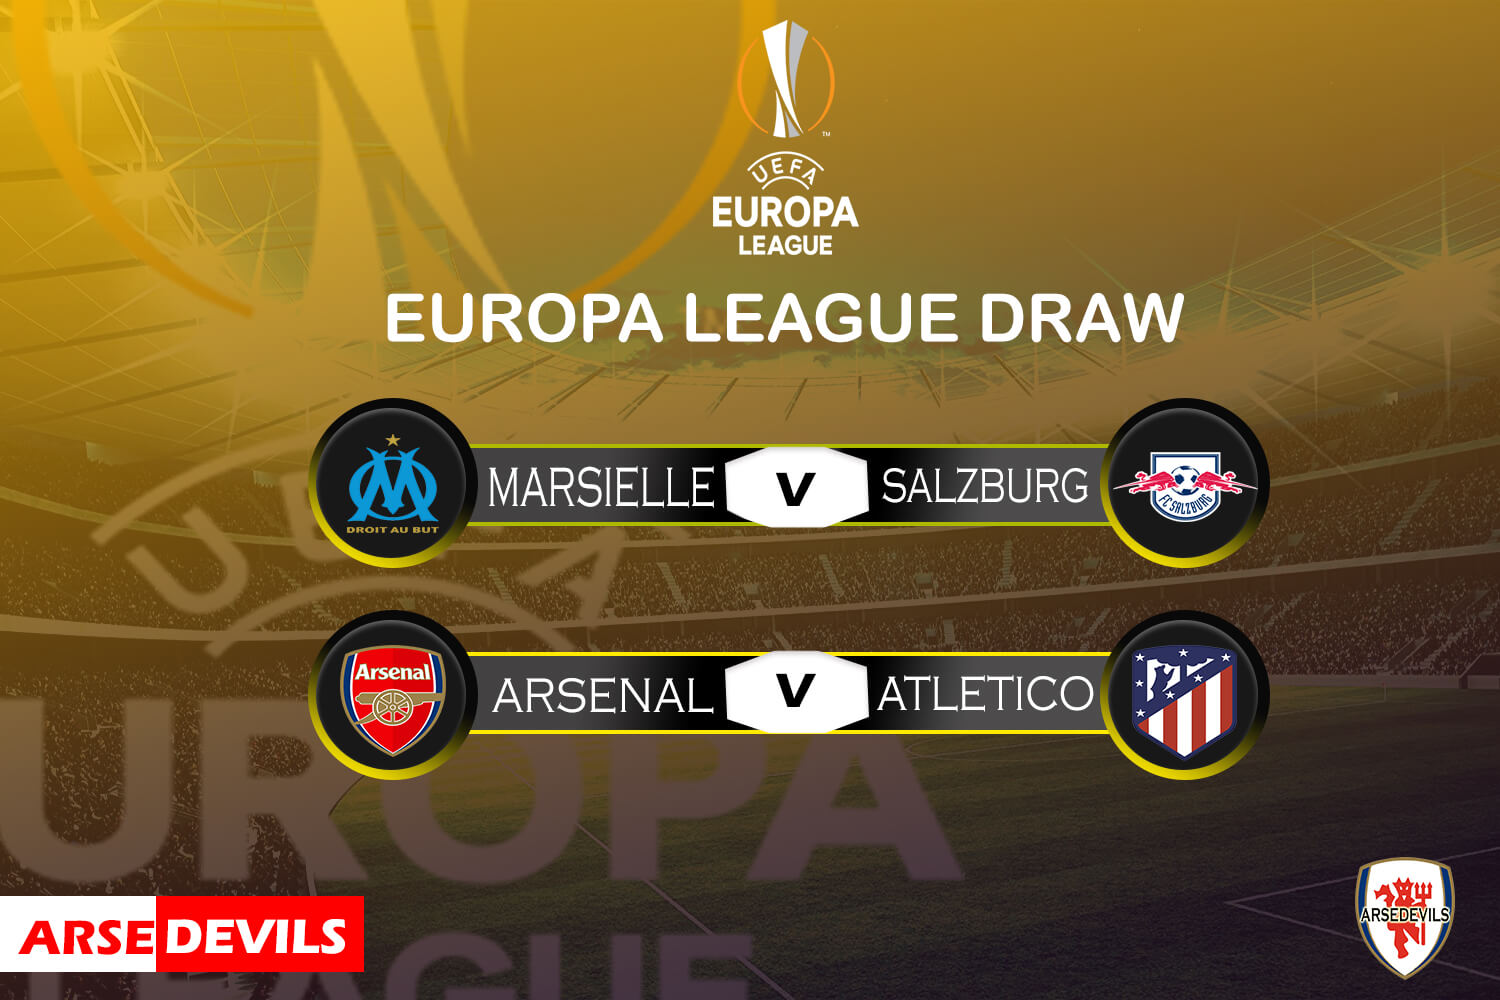 europa league draw - photo #10